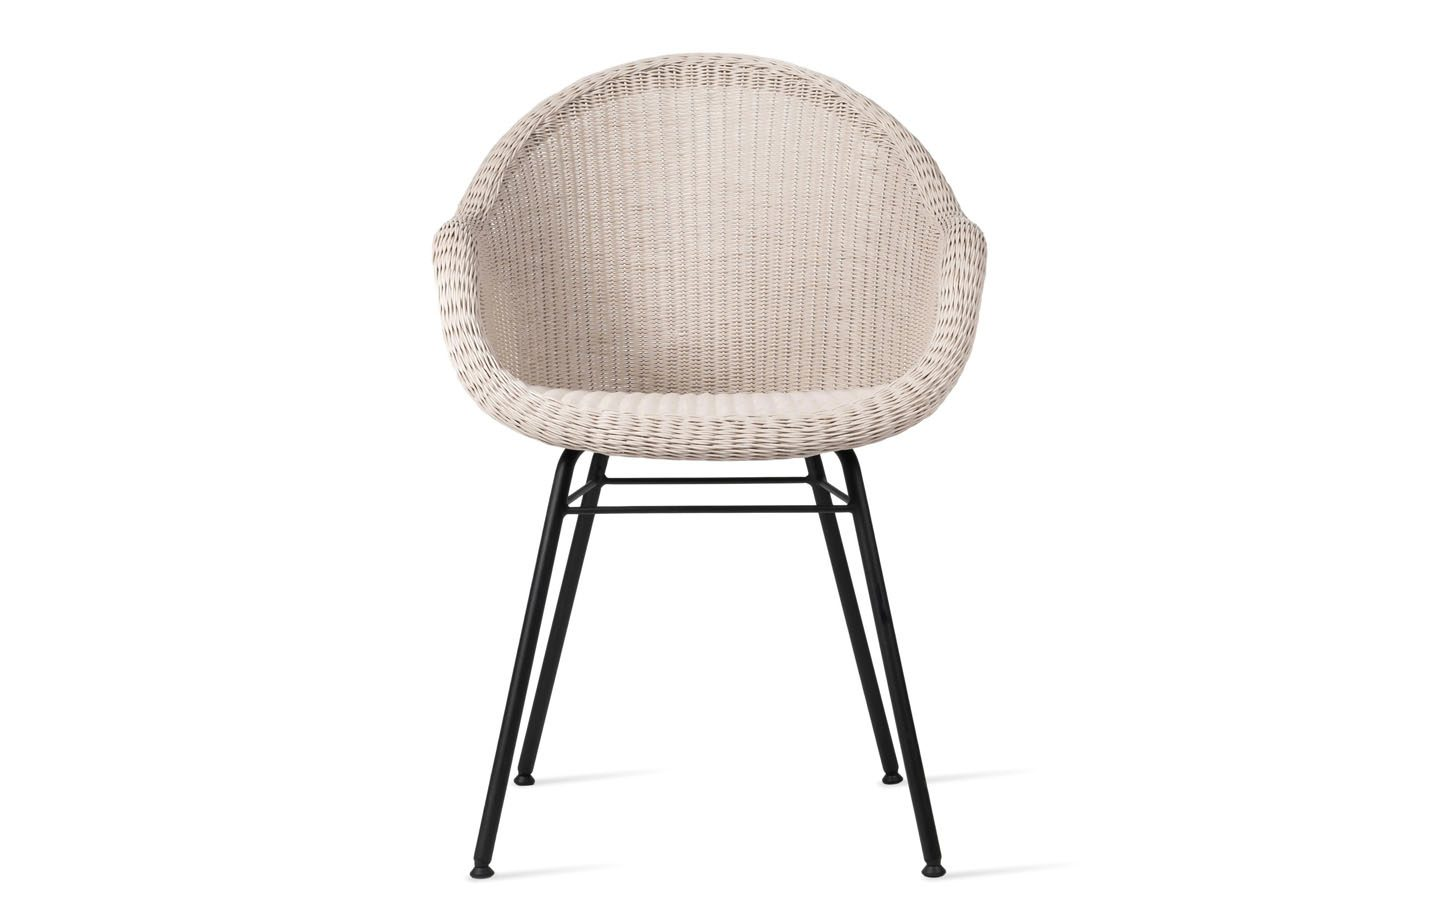 Edgard-dining-chair-lace-steel-base-06